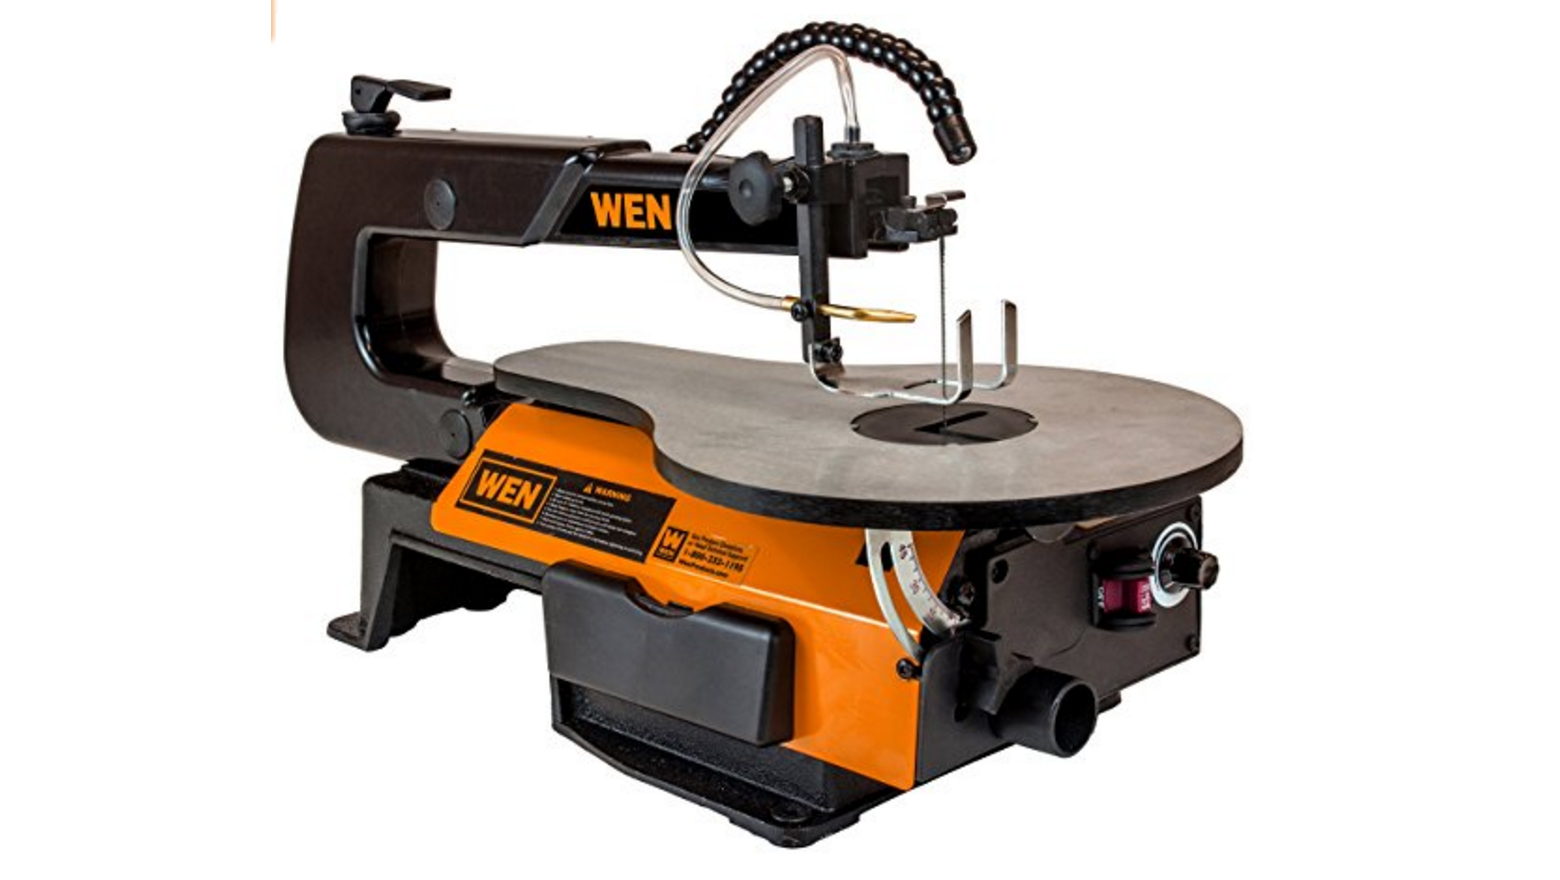 Amazon, cyber monday, cyber monday sales, cyber monday deals, tools, power tools, hand tools, woodworking tools, scroll saw, wen